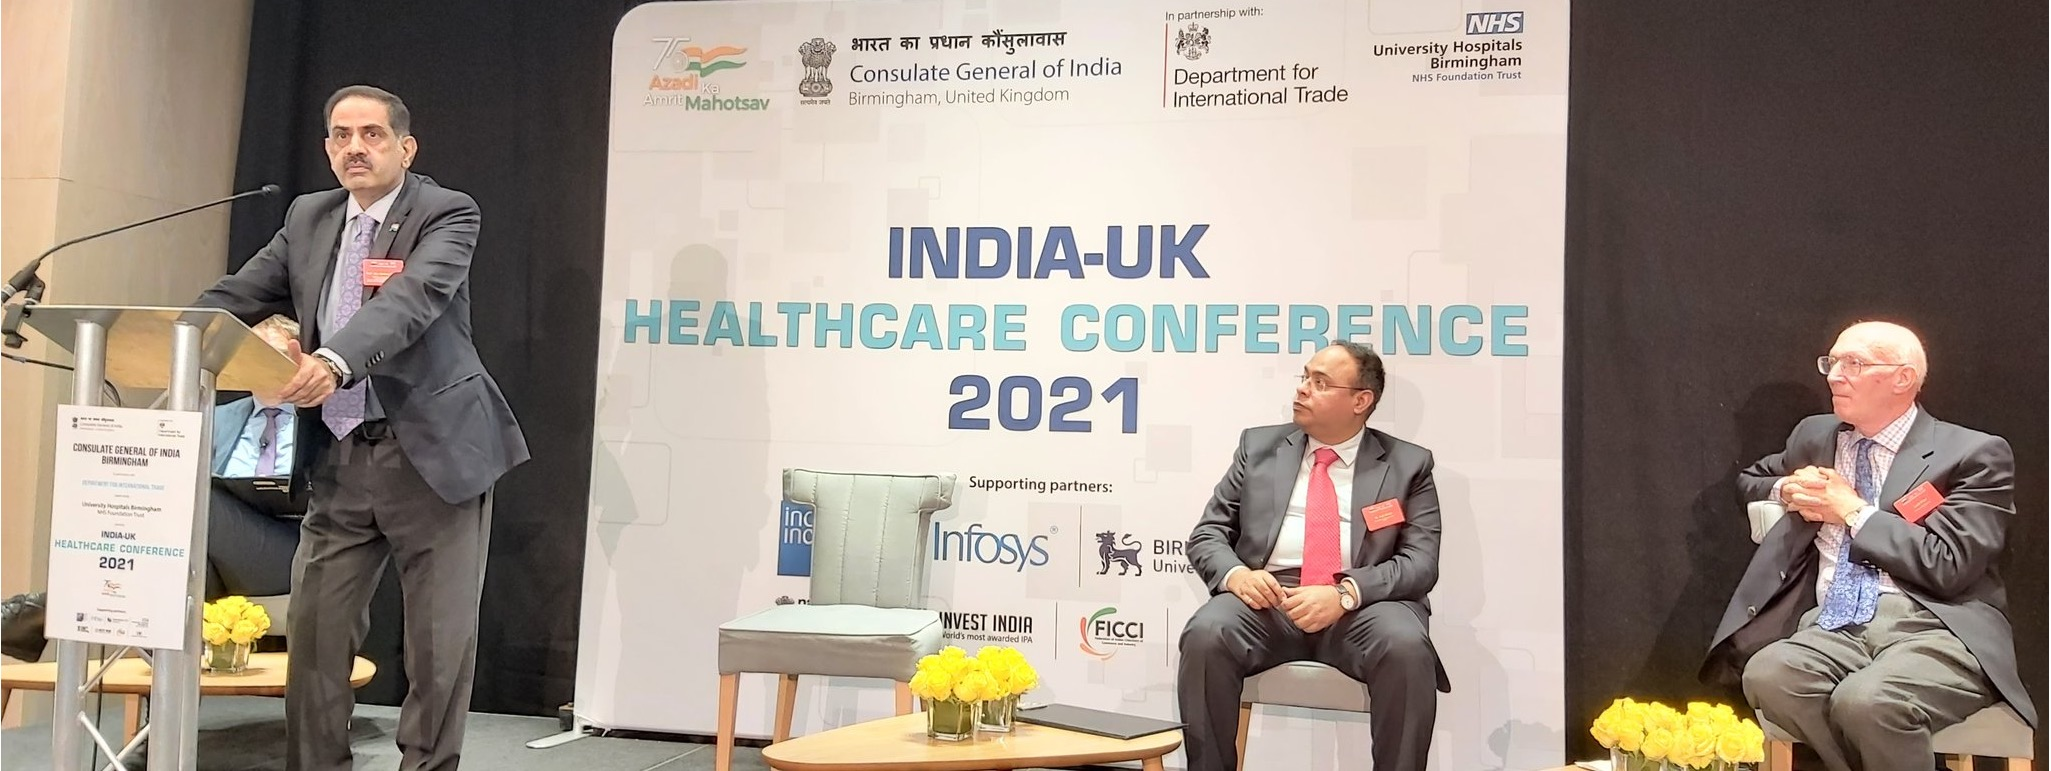 INDO-UK Healthcare Conference 2021